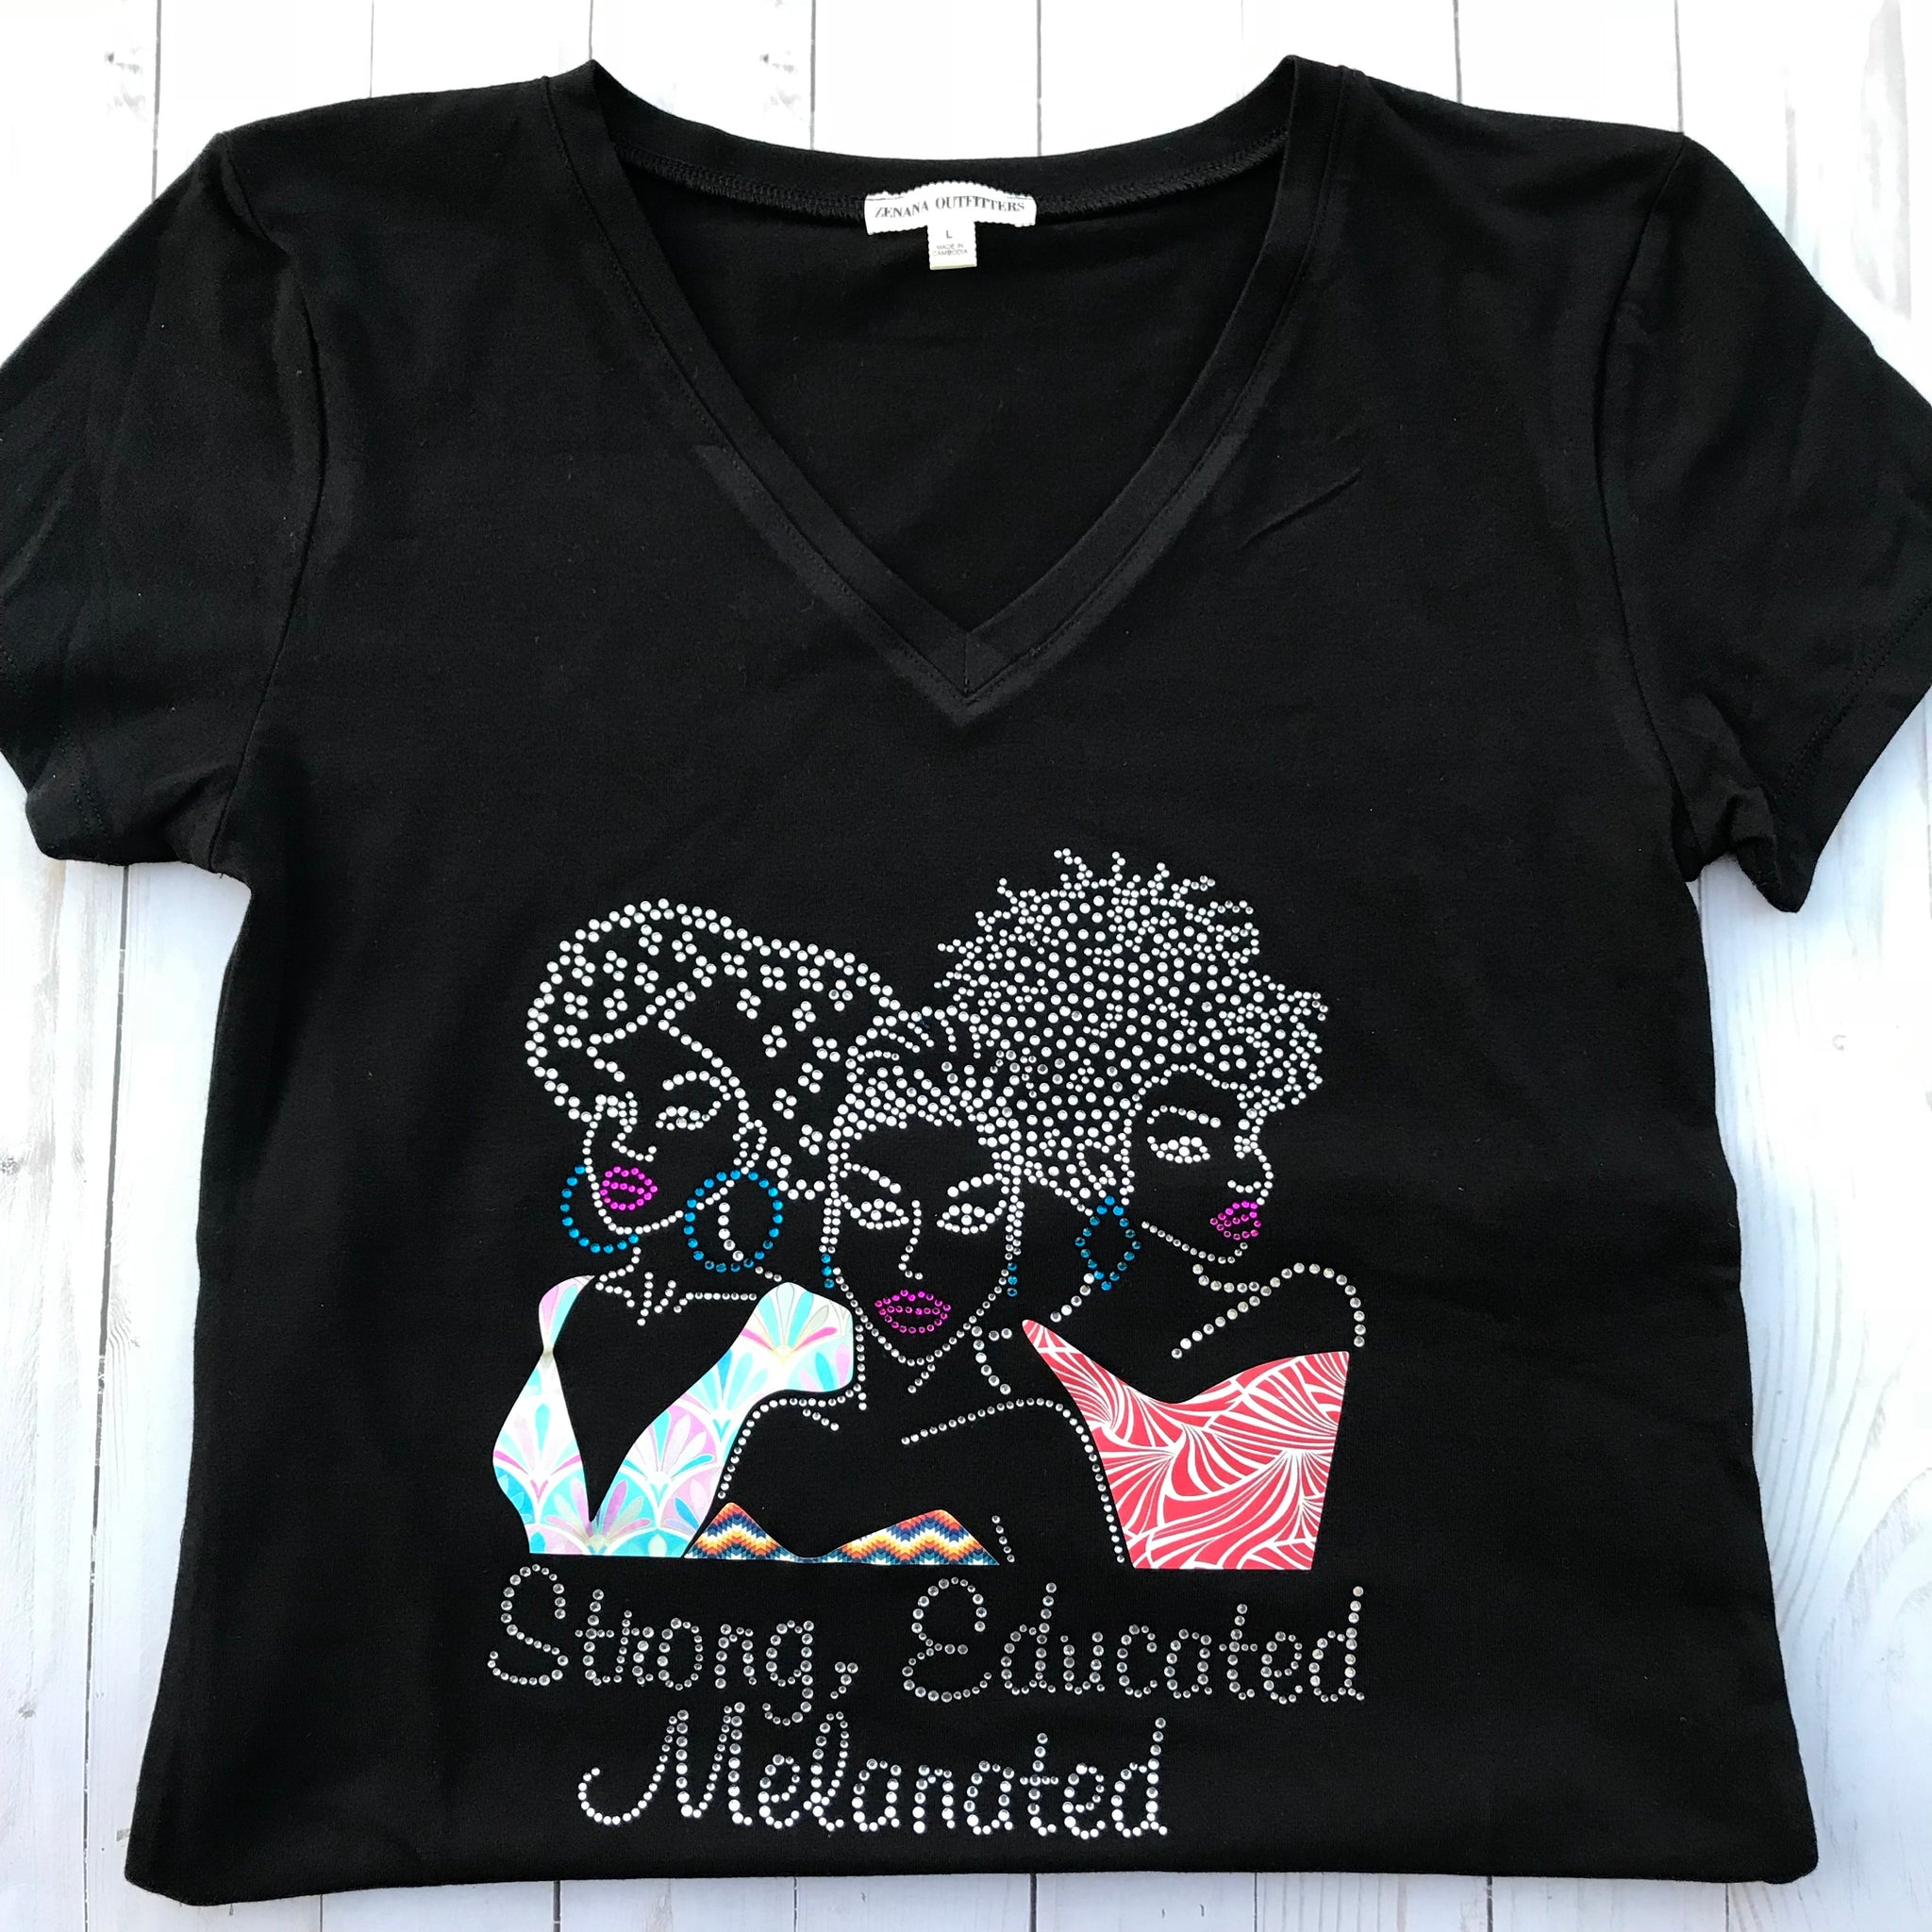 Strong, Educated Melanated T-Shirt